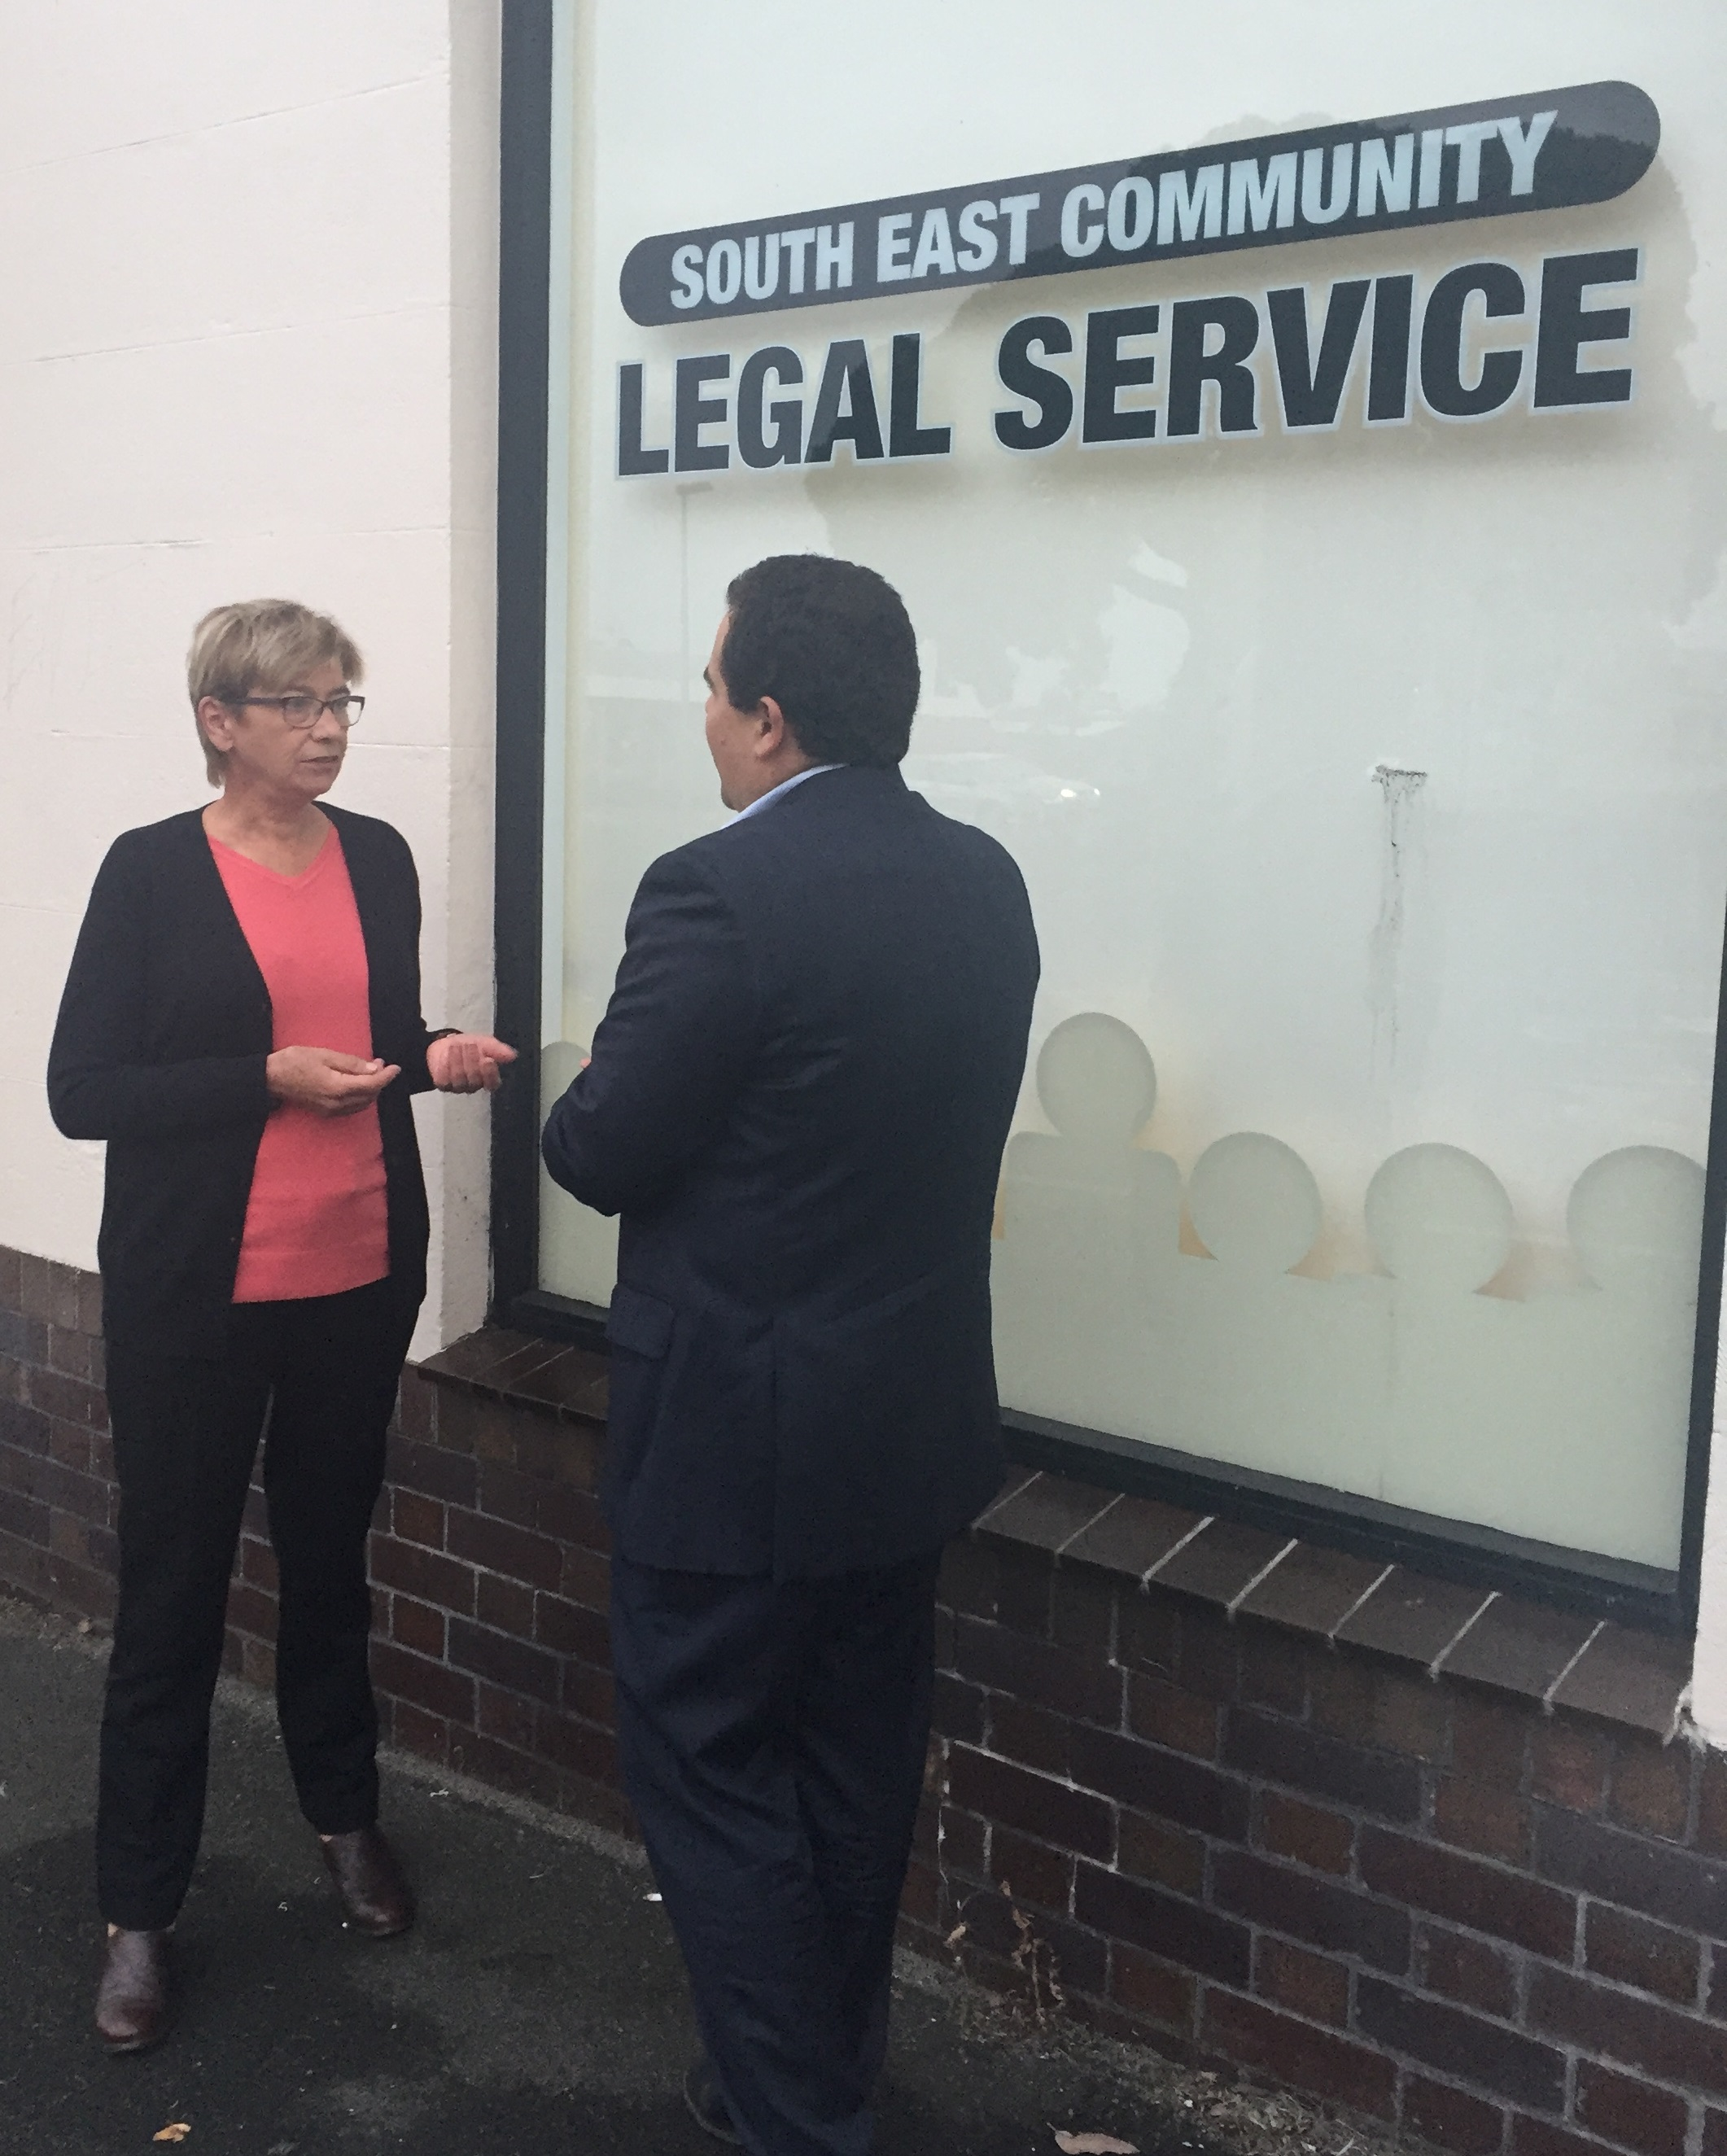 Record Federal funding for legal assistance sector